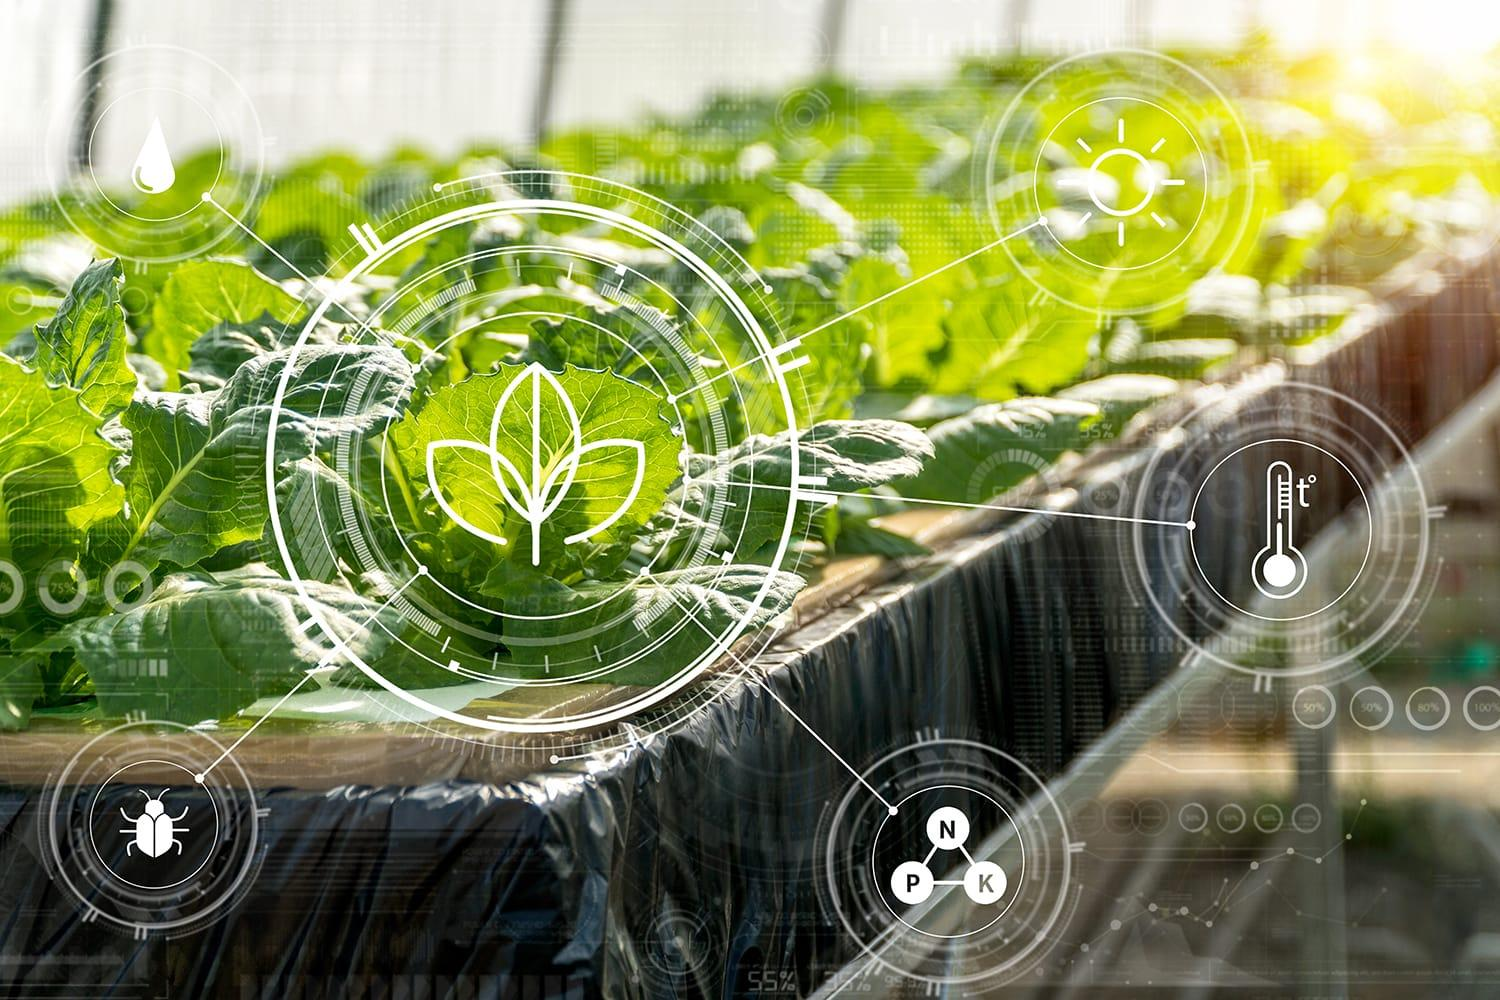 Crops being monitored with machine learning technology